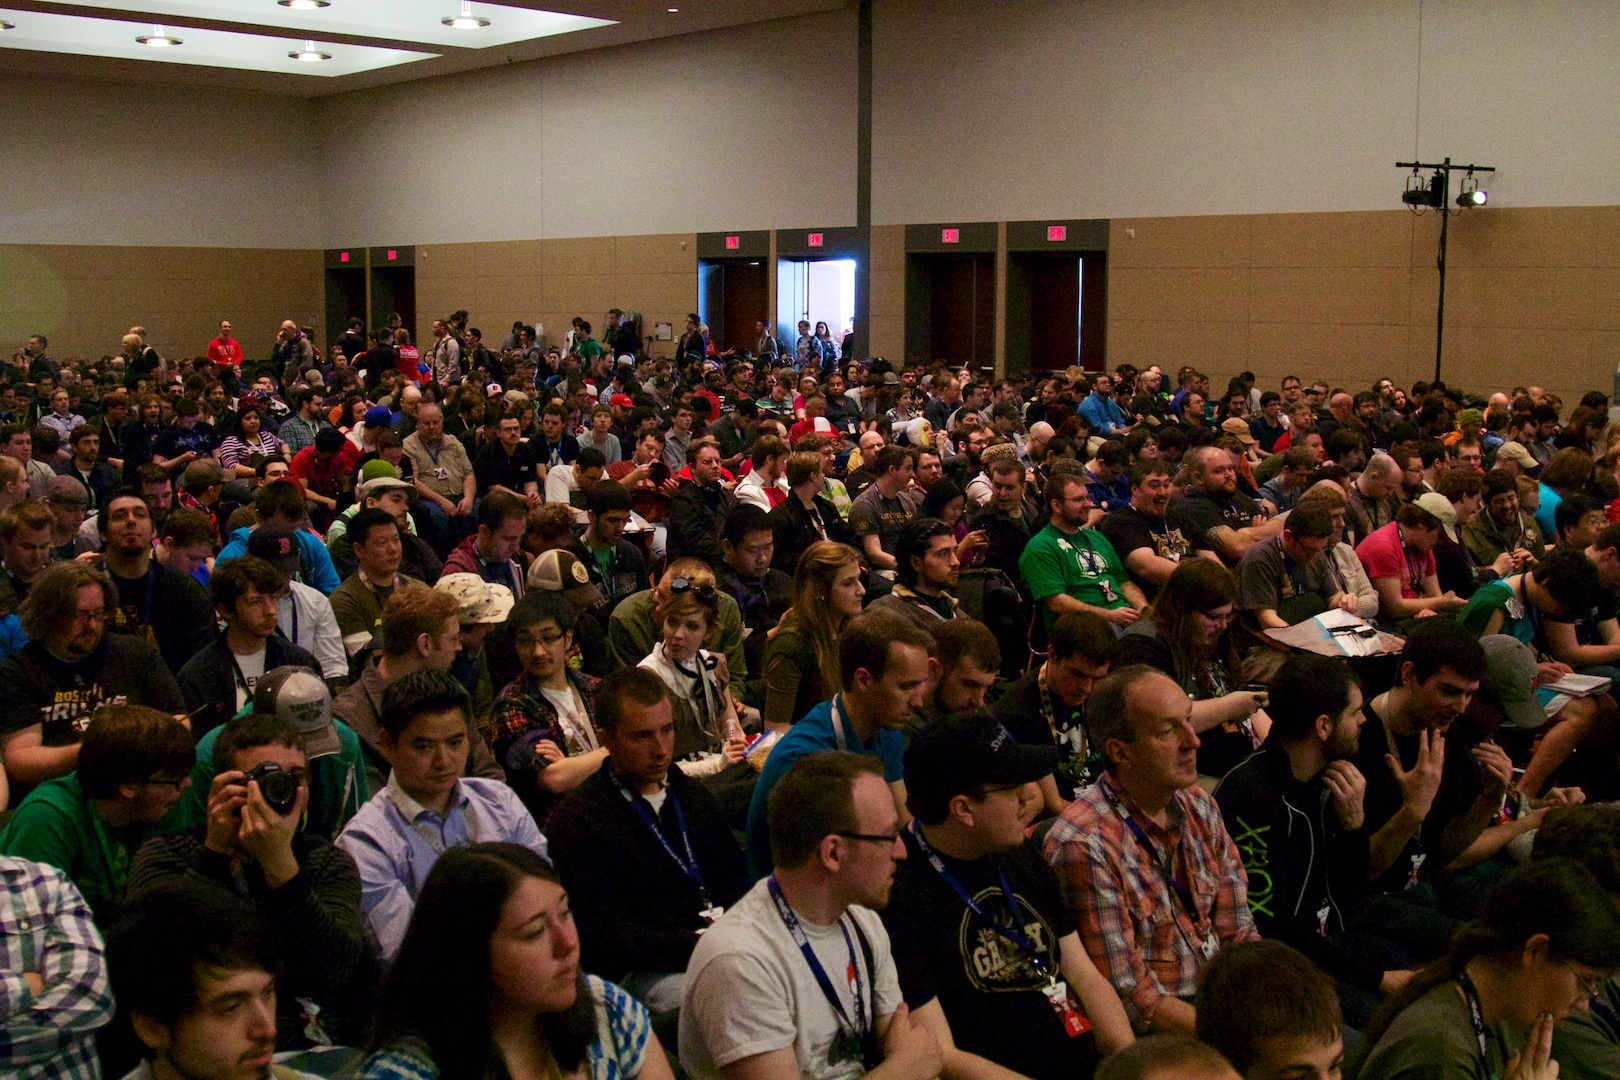 About half of the crowd that had come to listen to the panel.